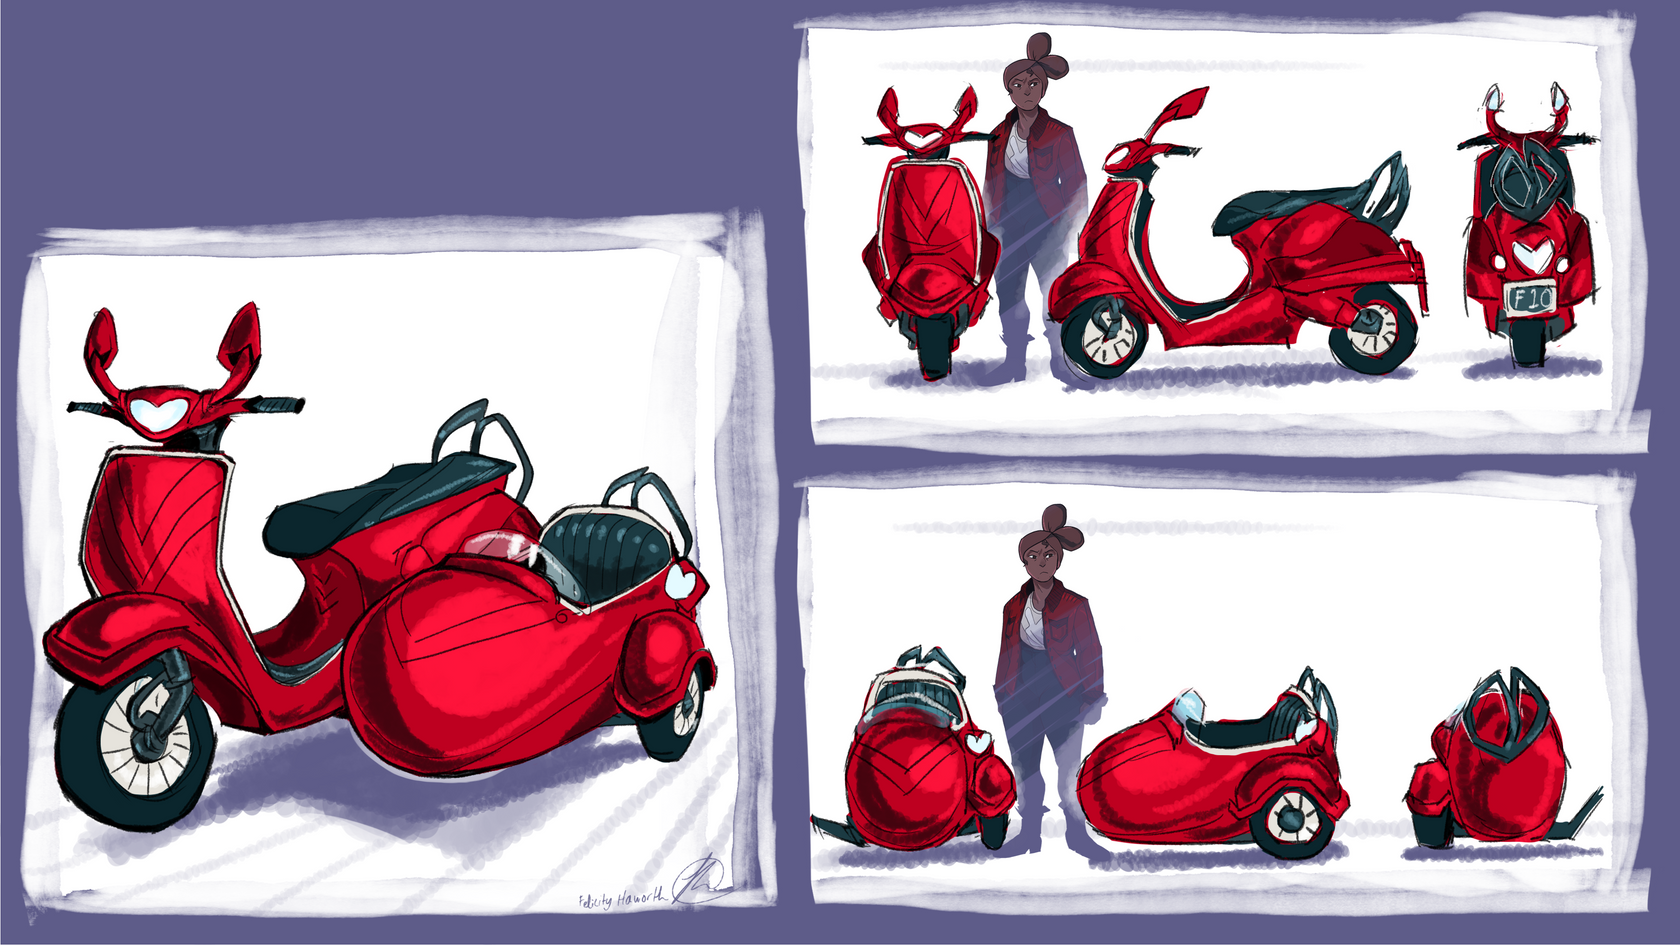 BUNNIES CAN BITE: Florentine's scooter